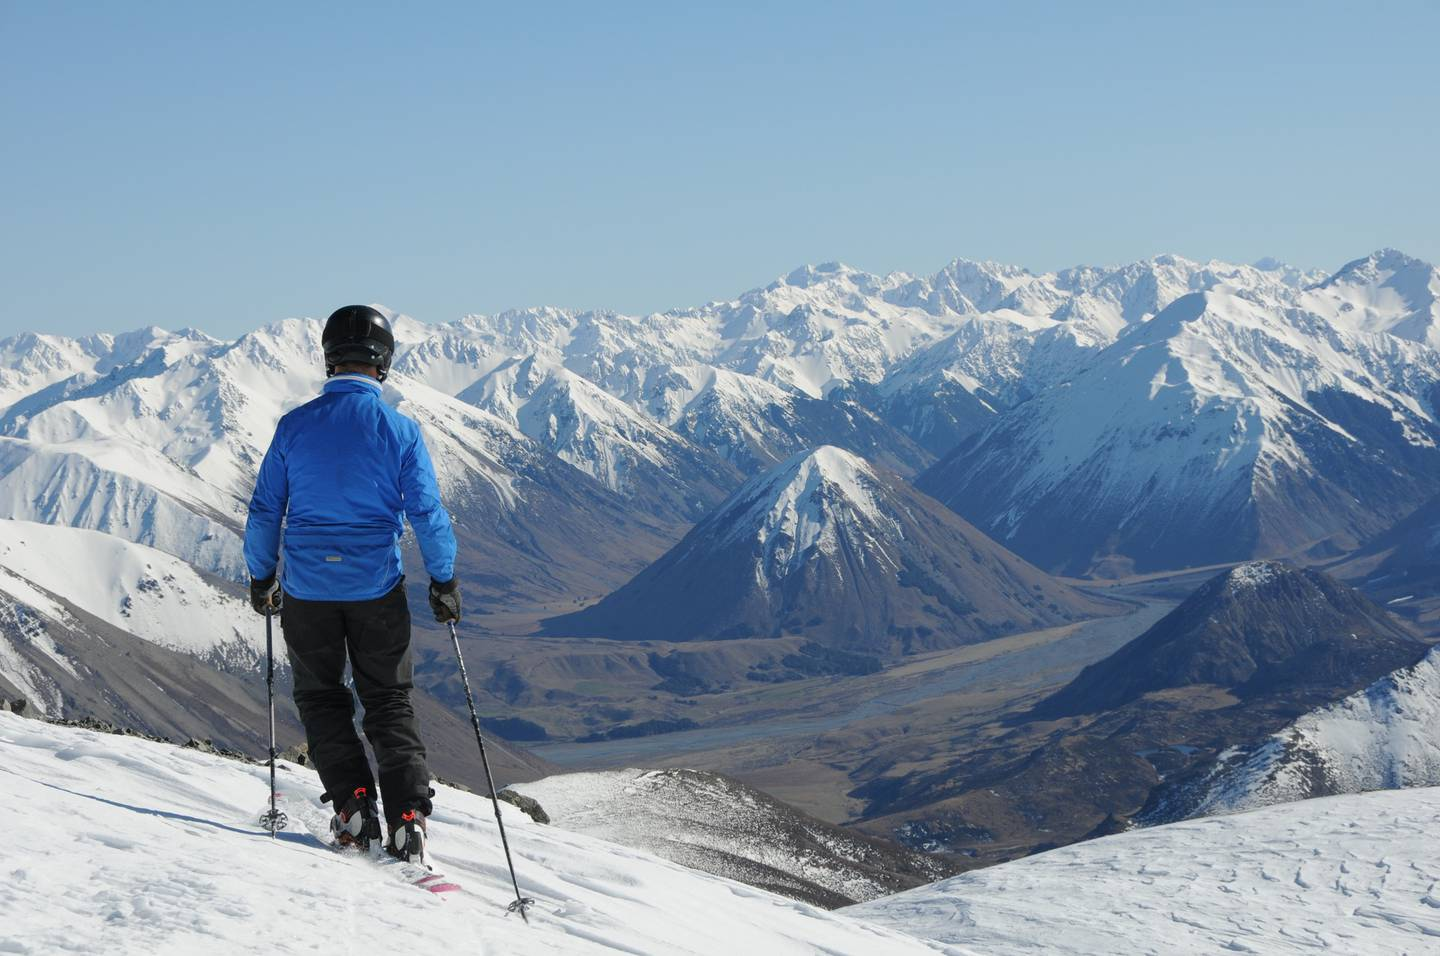 A view of the Southern Alps off the back of Porters Alpine Resort. Photo: Huw Kingston / NZH